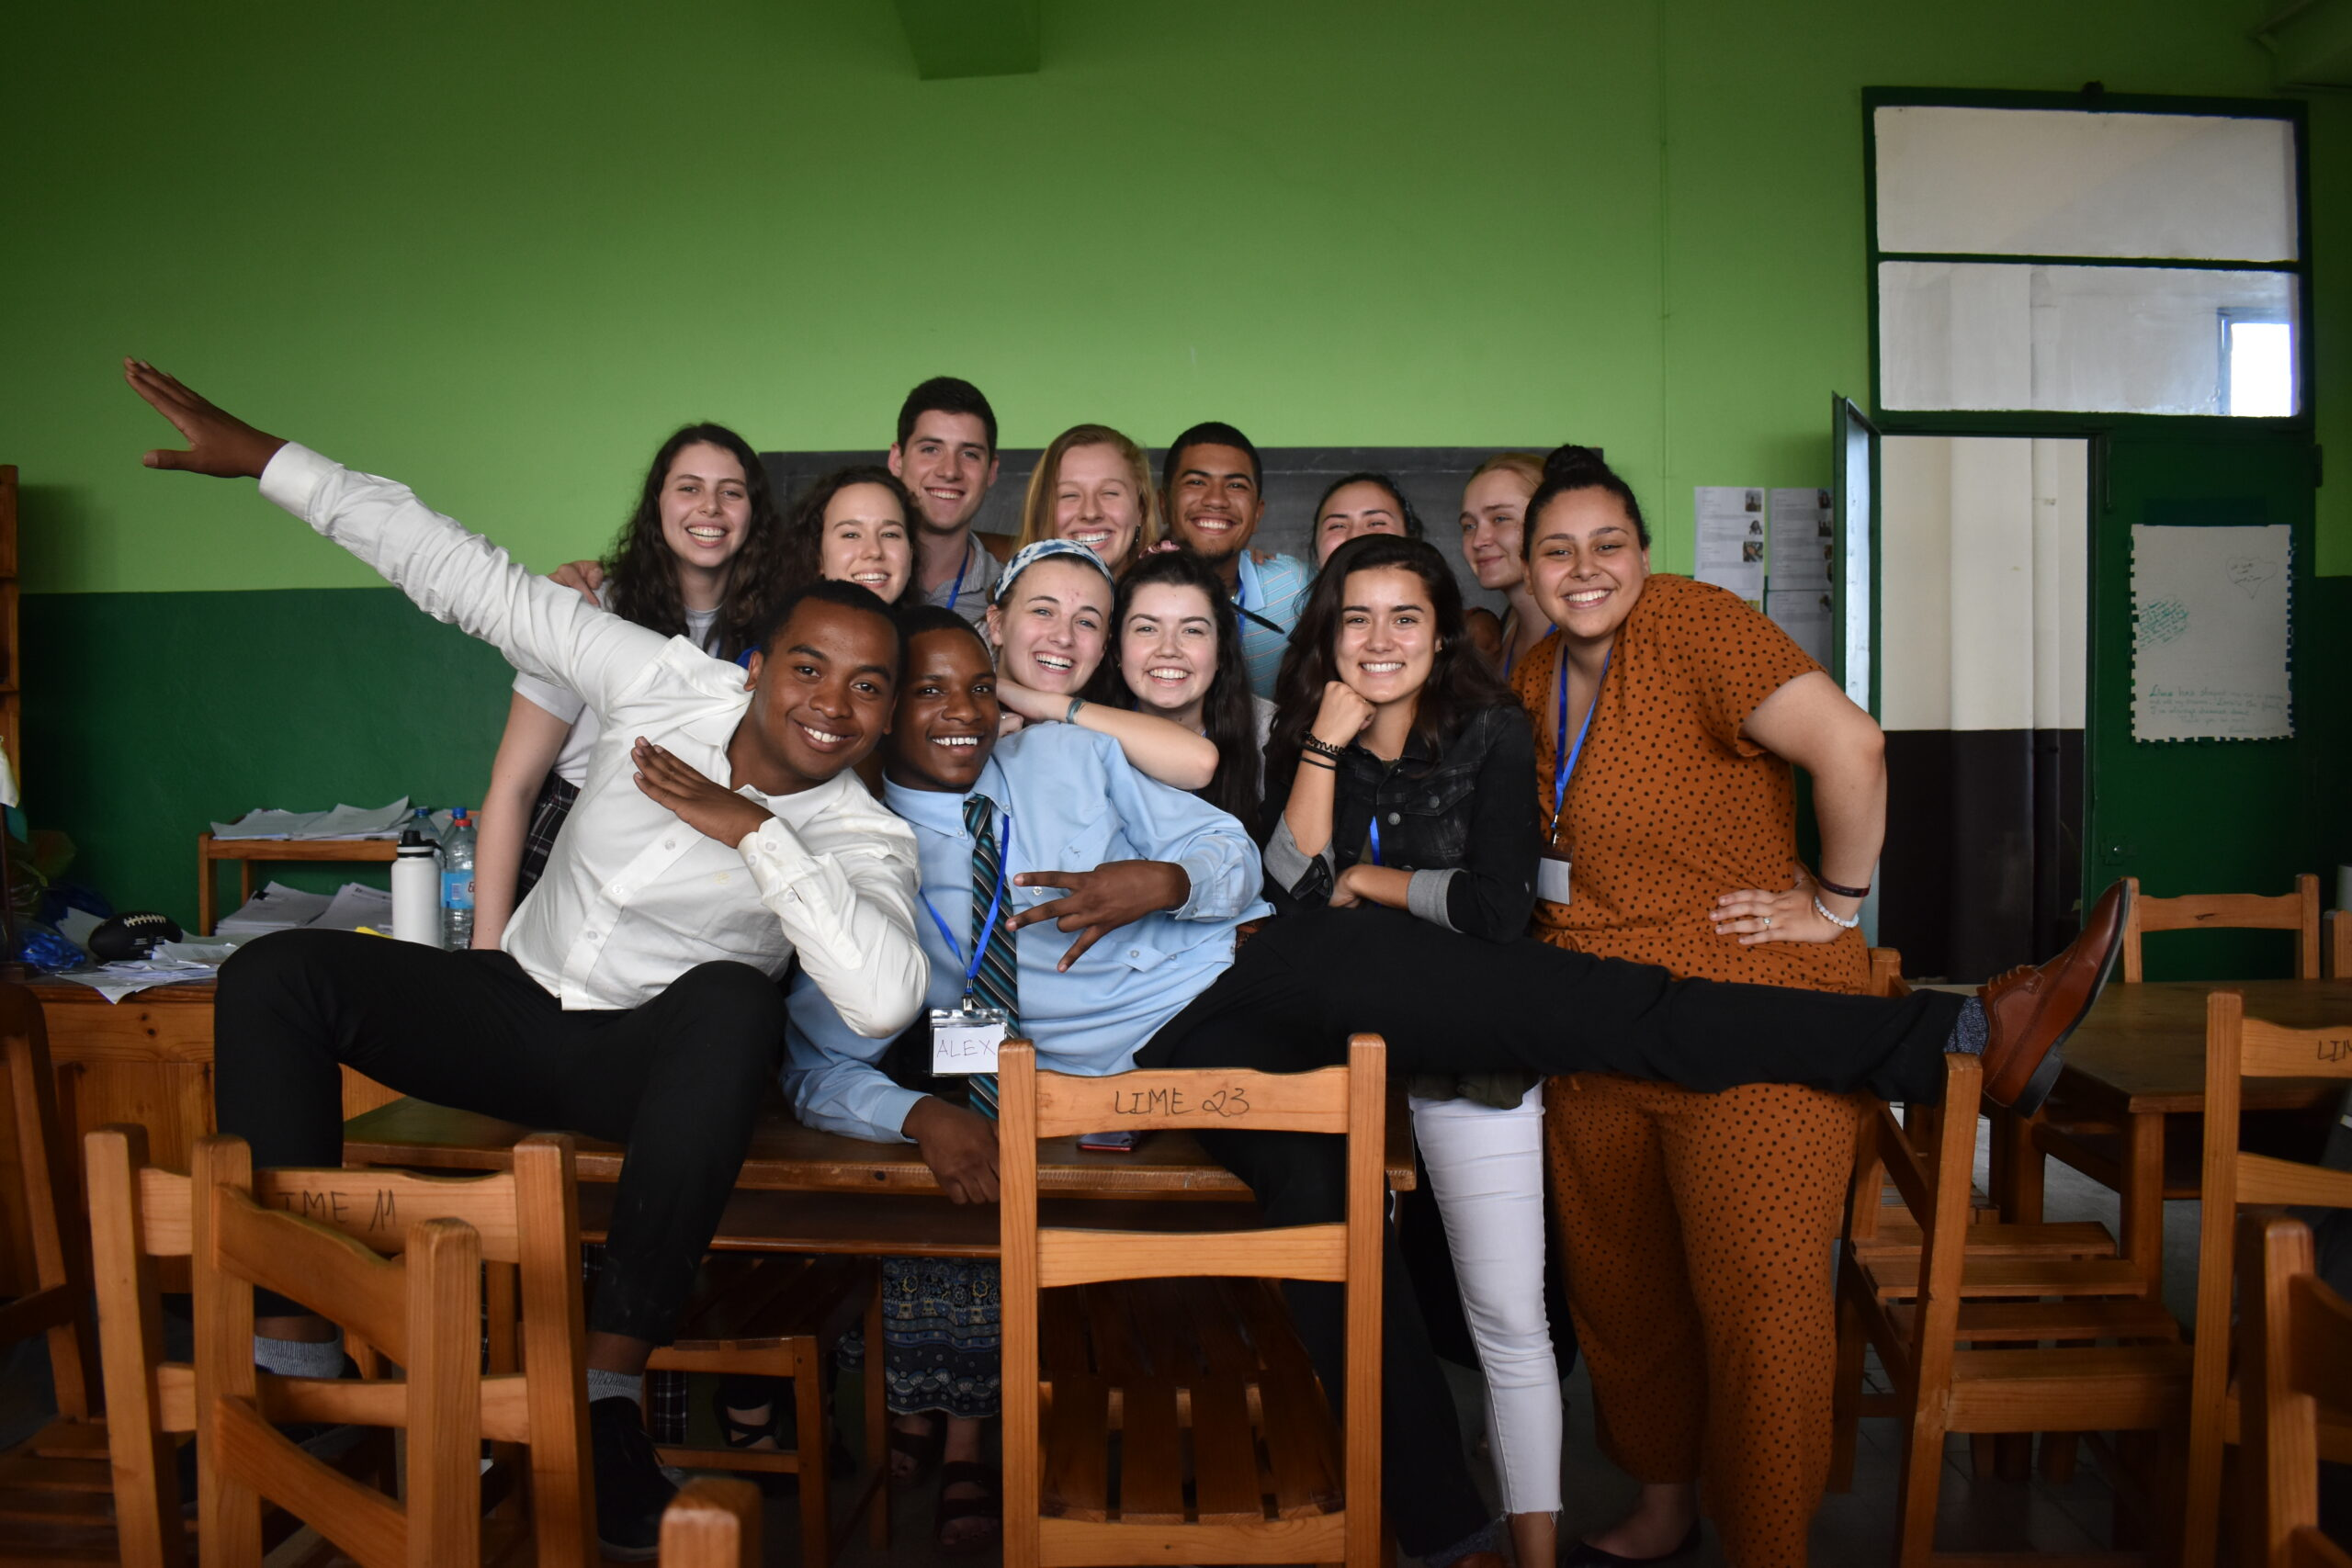 Lafayette students work as peer mentors at Madagascar high school as part of the LIME program.